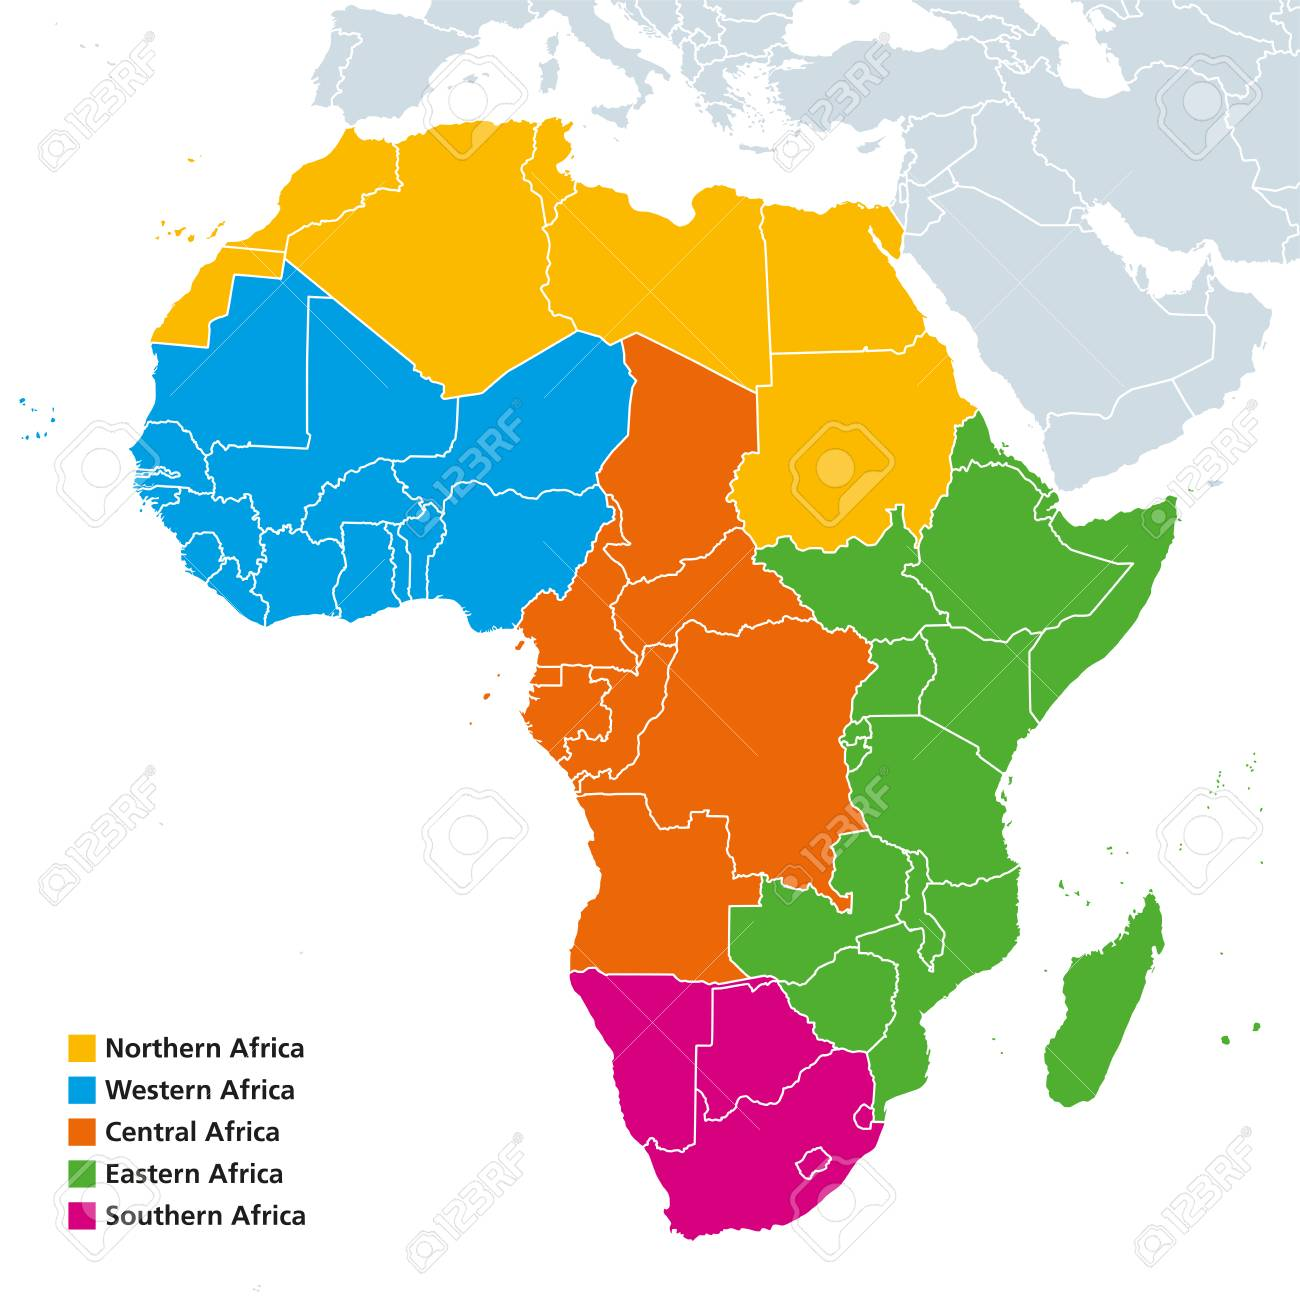 Africa Regions Political Map. United Nations Geoscheme With Single